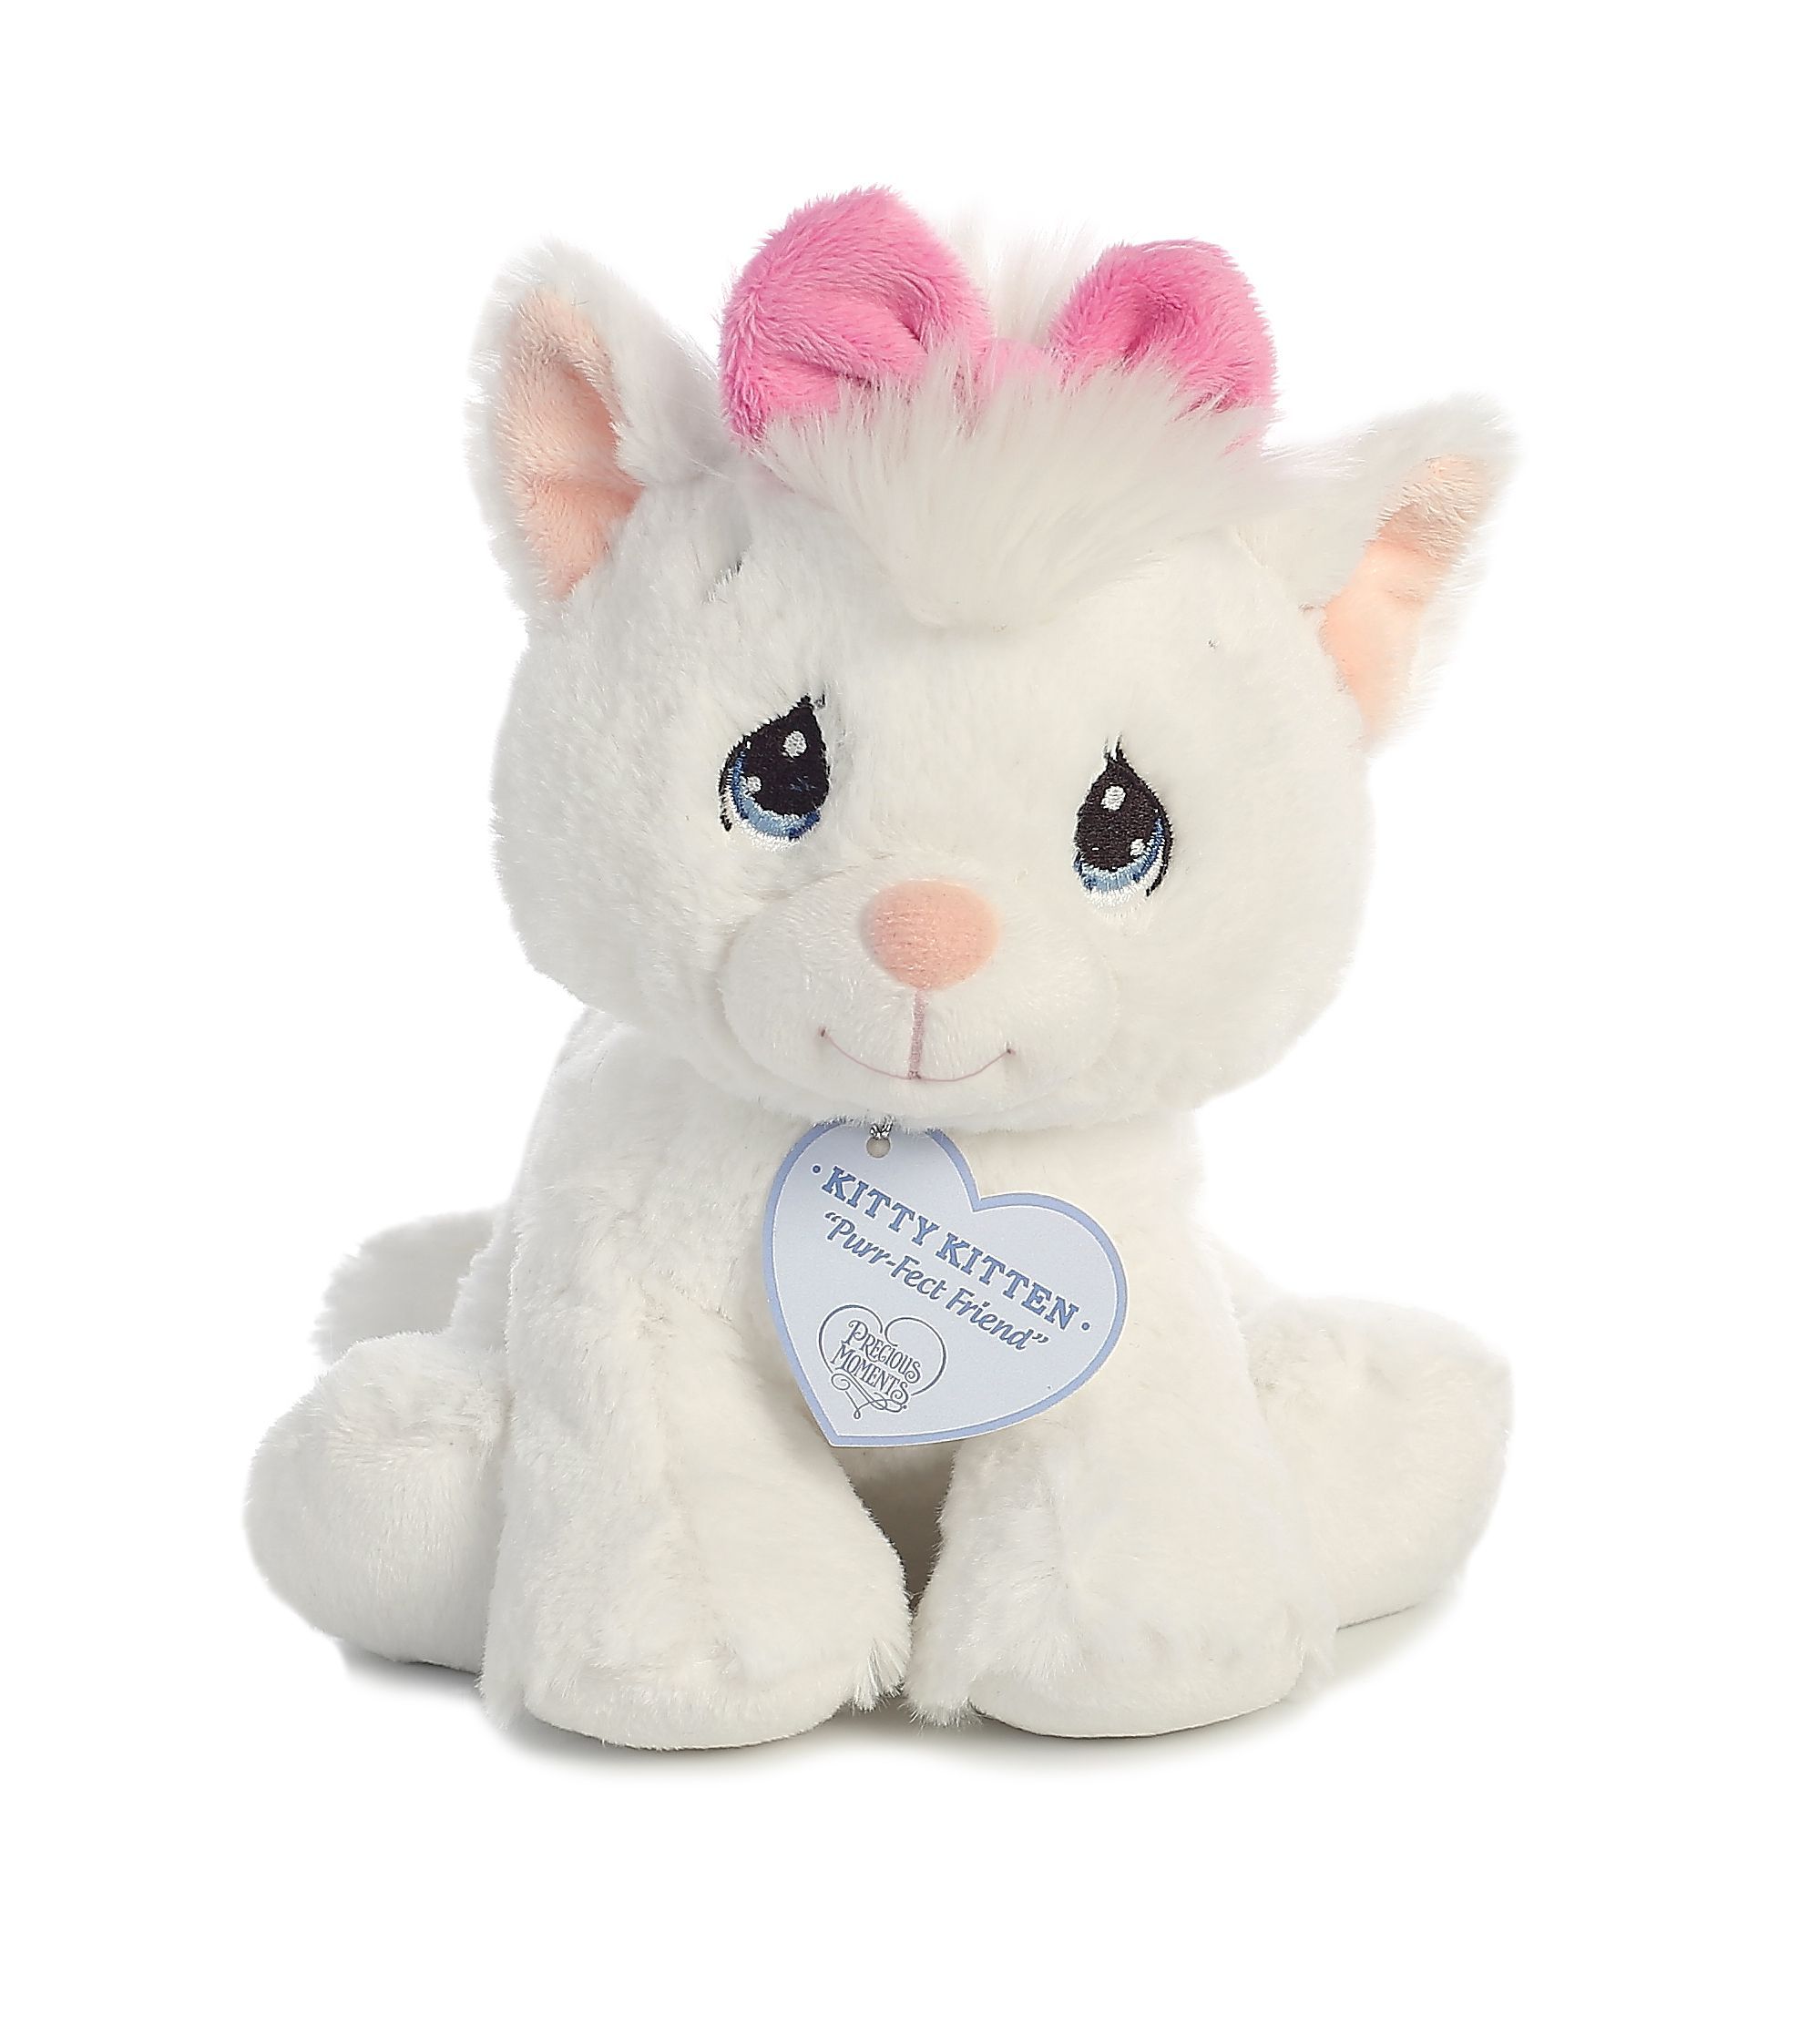 Kitty Kitten 8 inch Baby Stuffed Animal by Precious Moments (15708) by Precious Moments